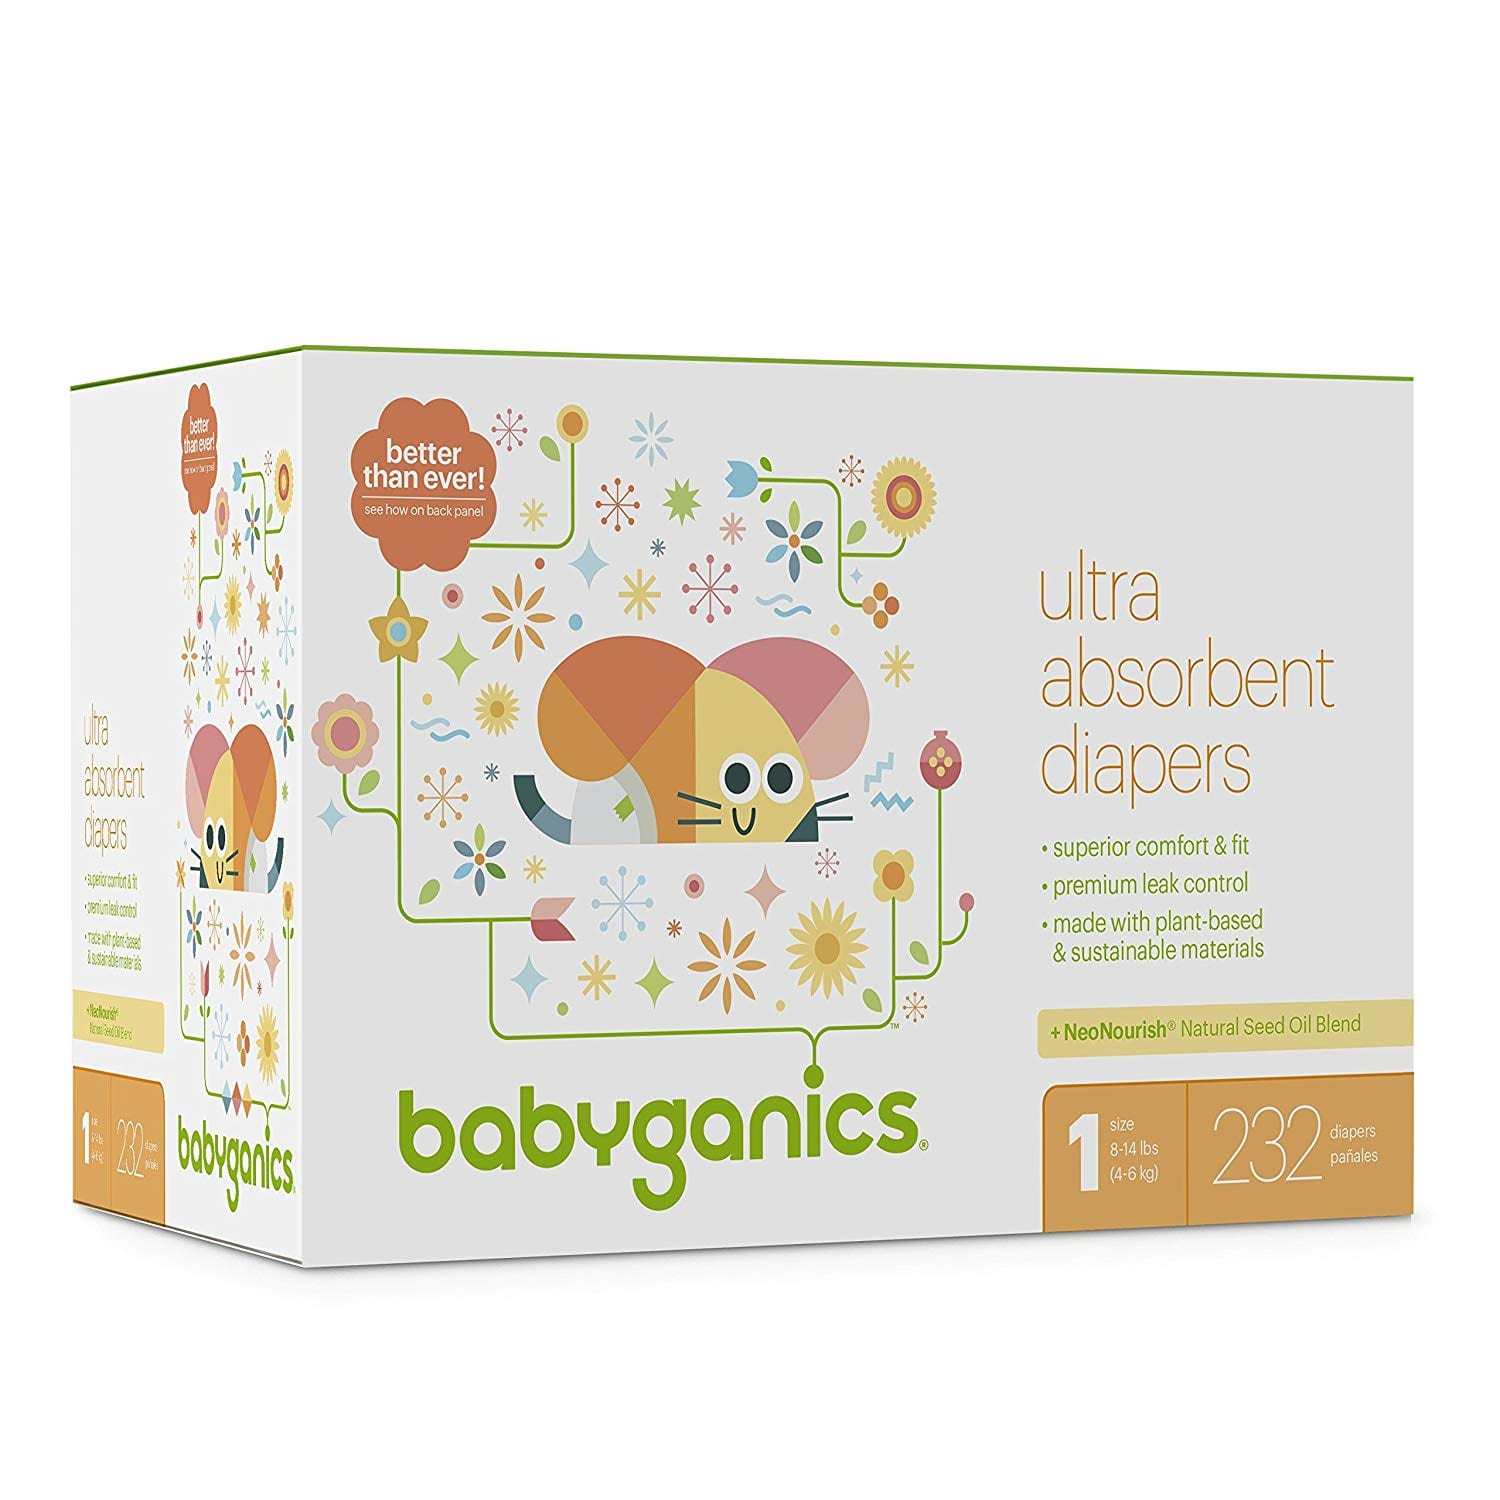 40% off Babyganics Diapers, Wipes, and More. Save more w/ S&S + F/S